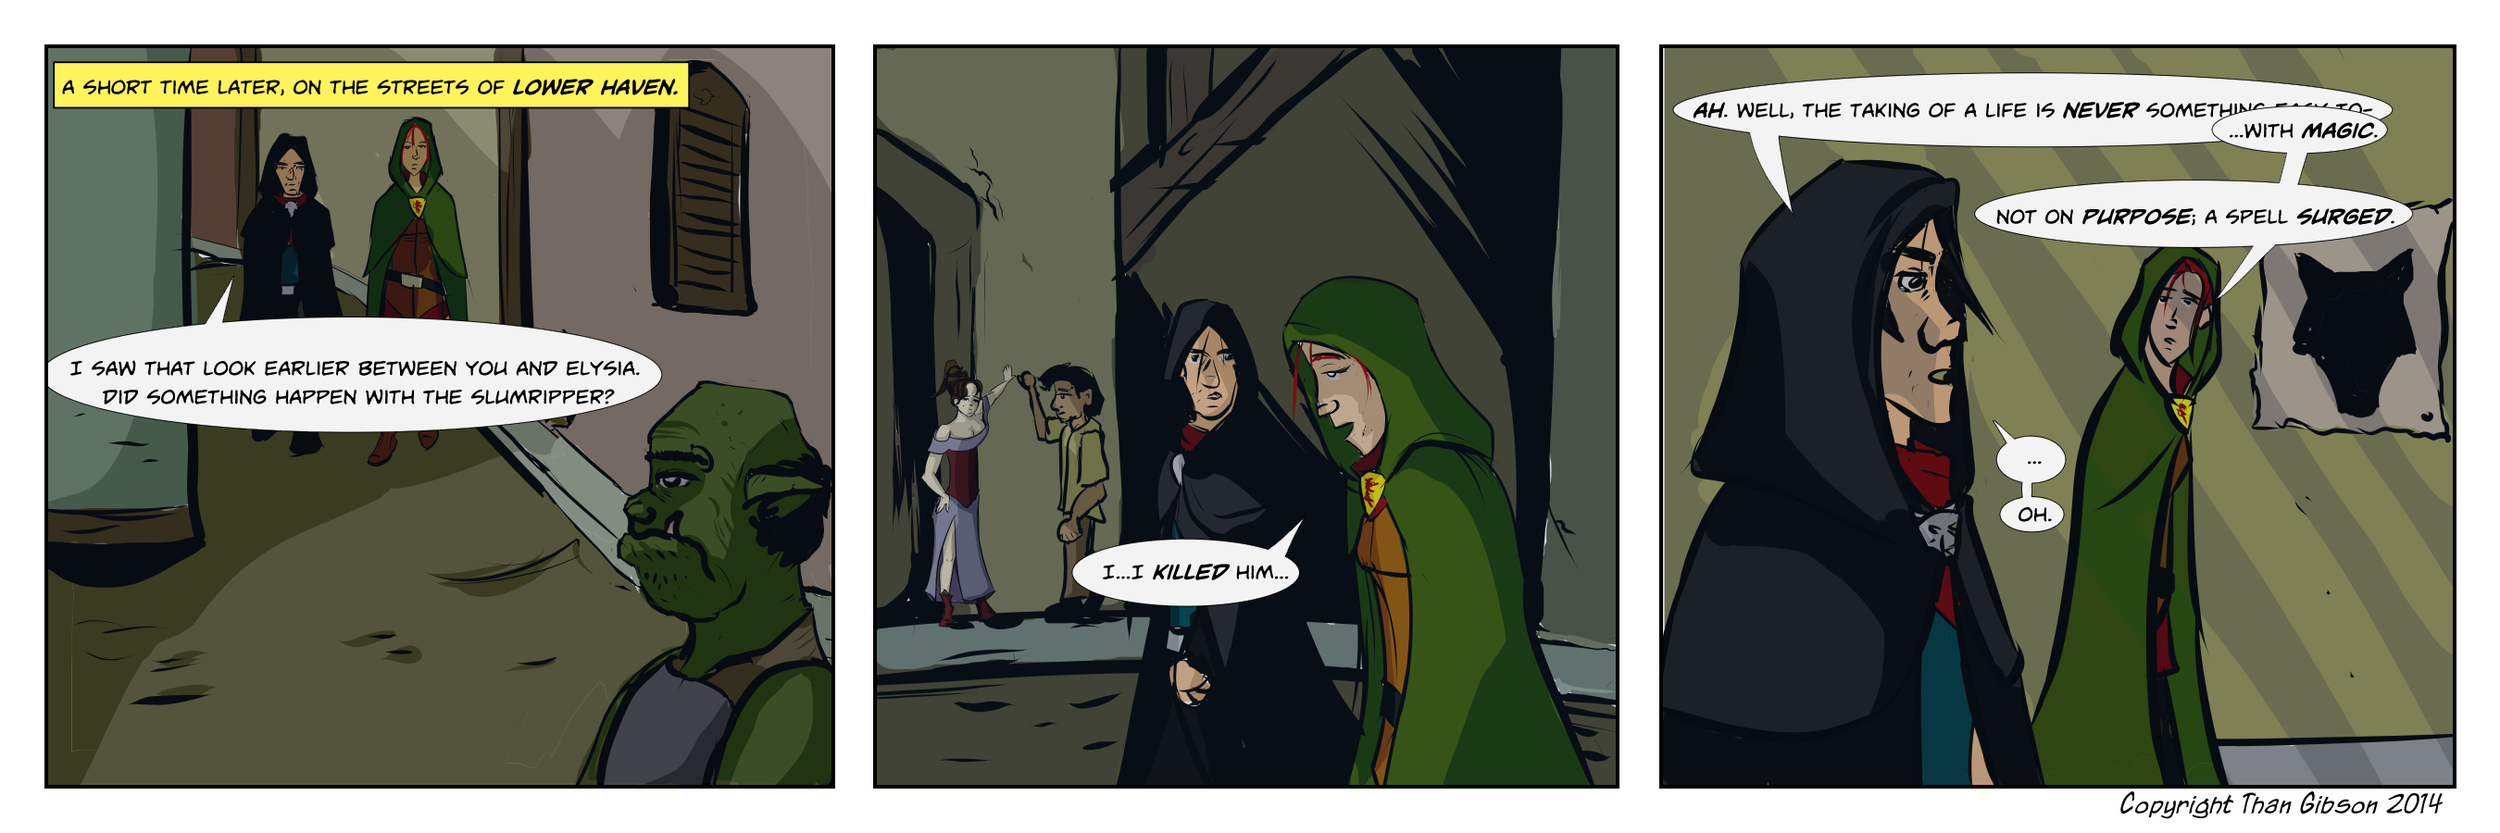 Strip 17 -Click the image for a larger view!